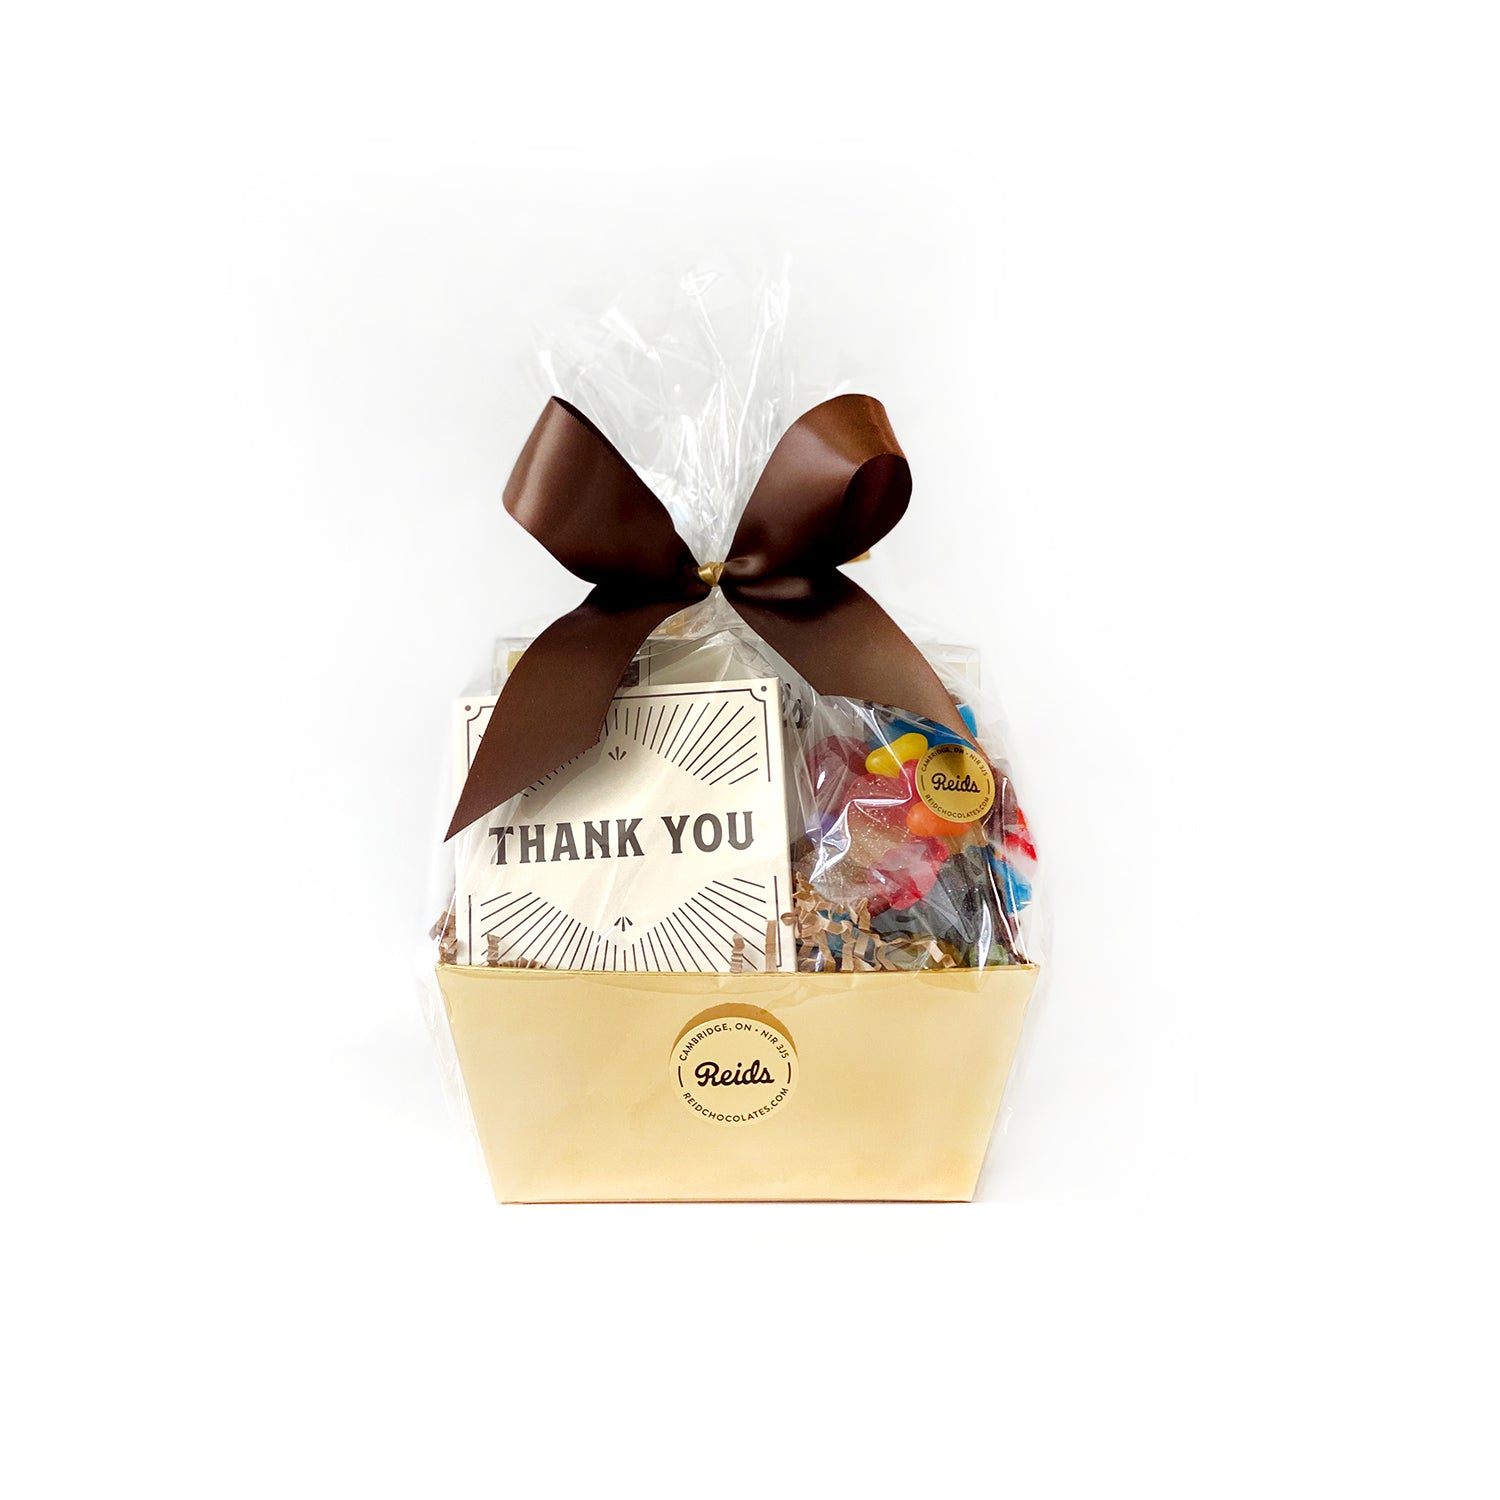 A basket filled with 100 g assorted chocolates, 1/2 lb rosebuds, and 1/2 lb bag of candy. Perfect to say Thank You.